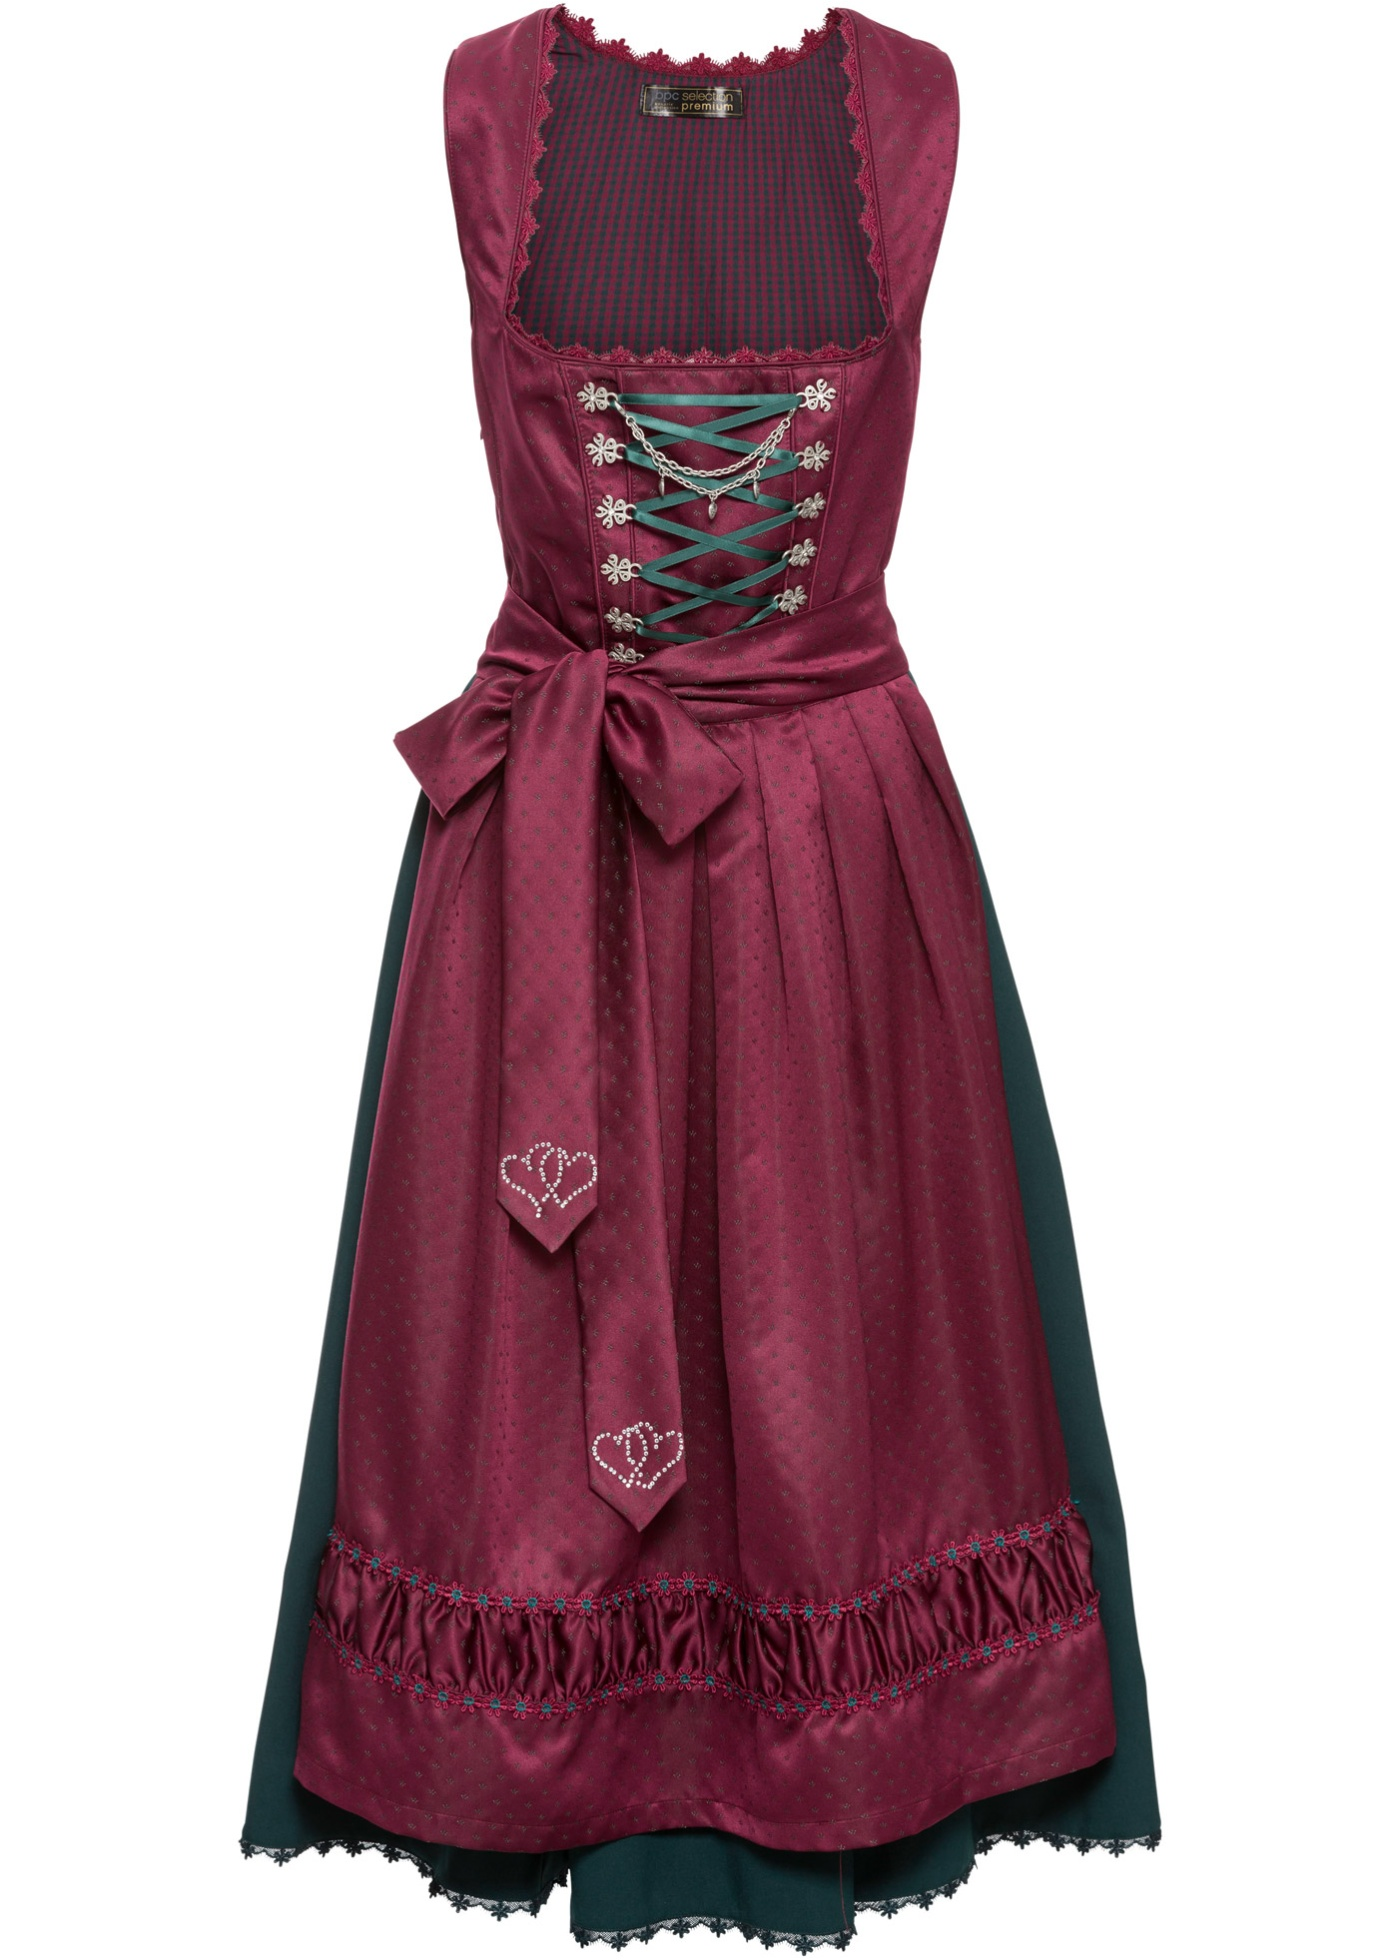 Dirndl à tablier satin brodé